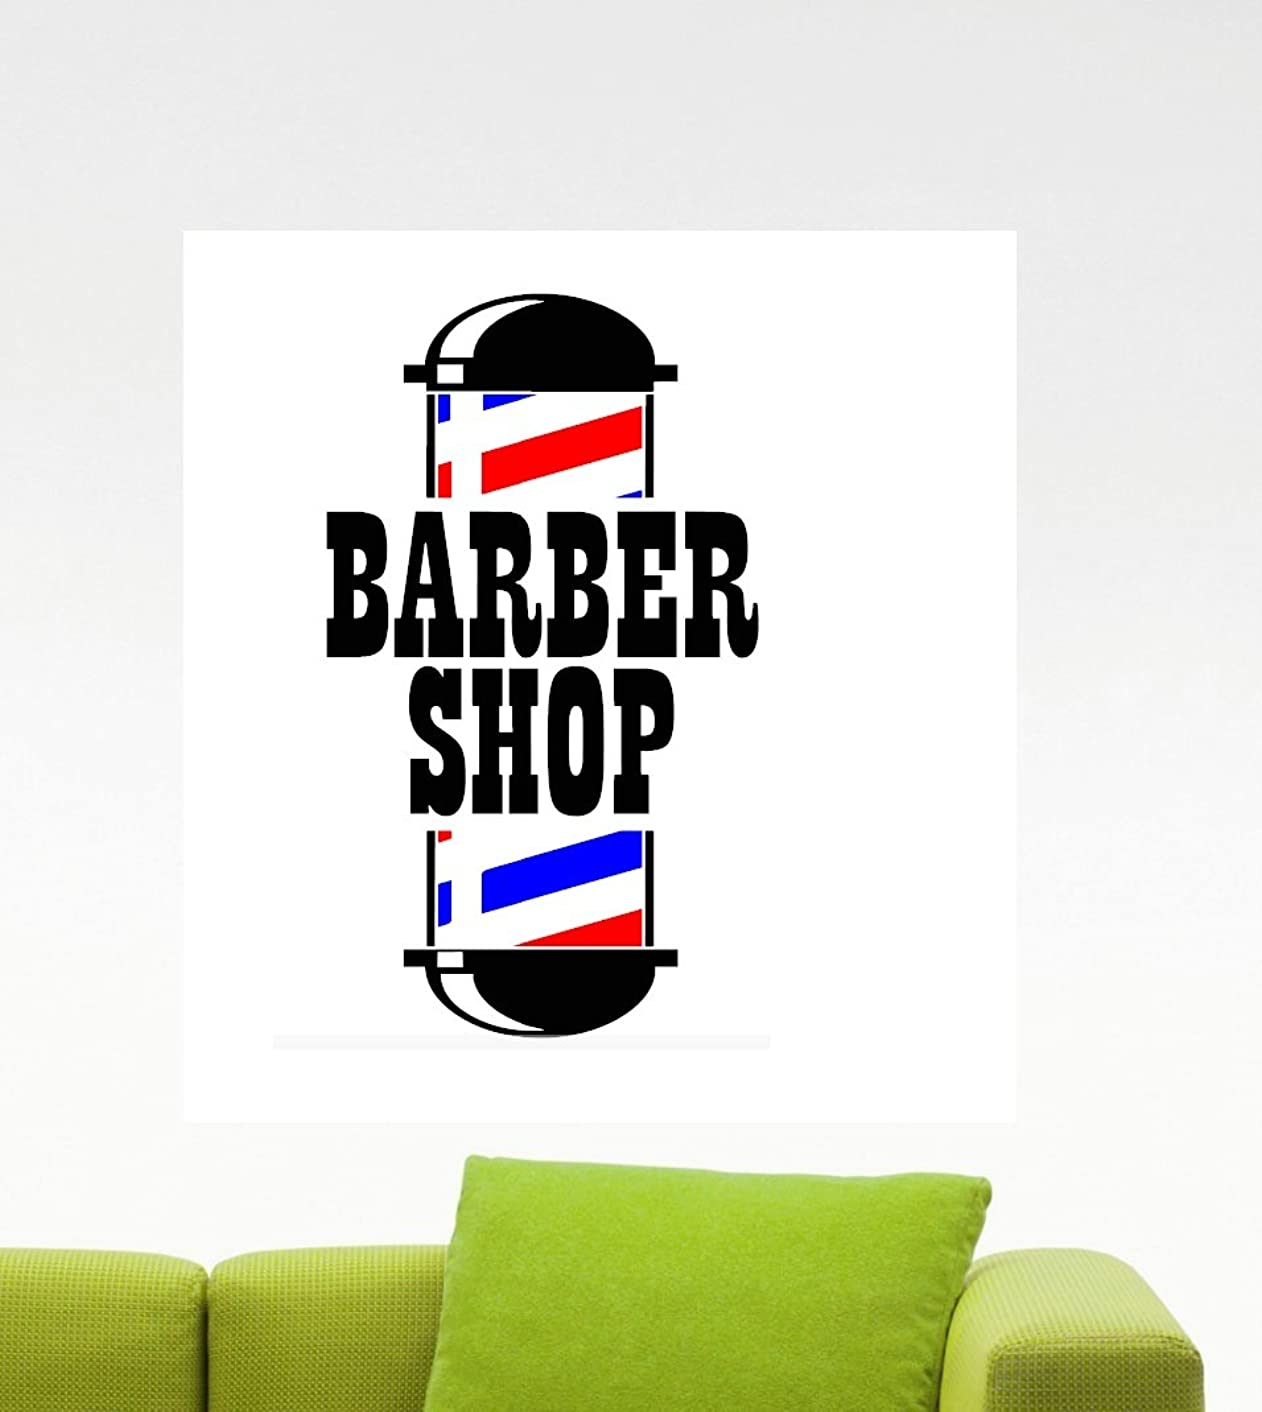 Large Three color Barber Shop Logo Removable Vinyl Window Decal Sticker Hair Haircut Hairdressing Salon Decorations Wall Art Decor (23